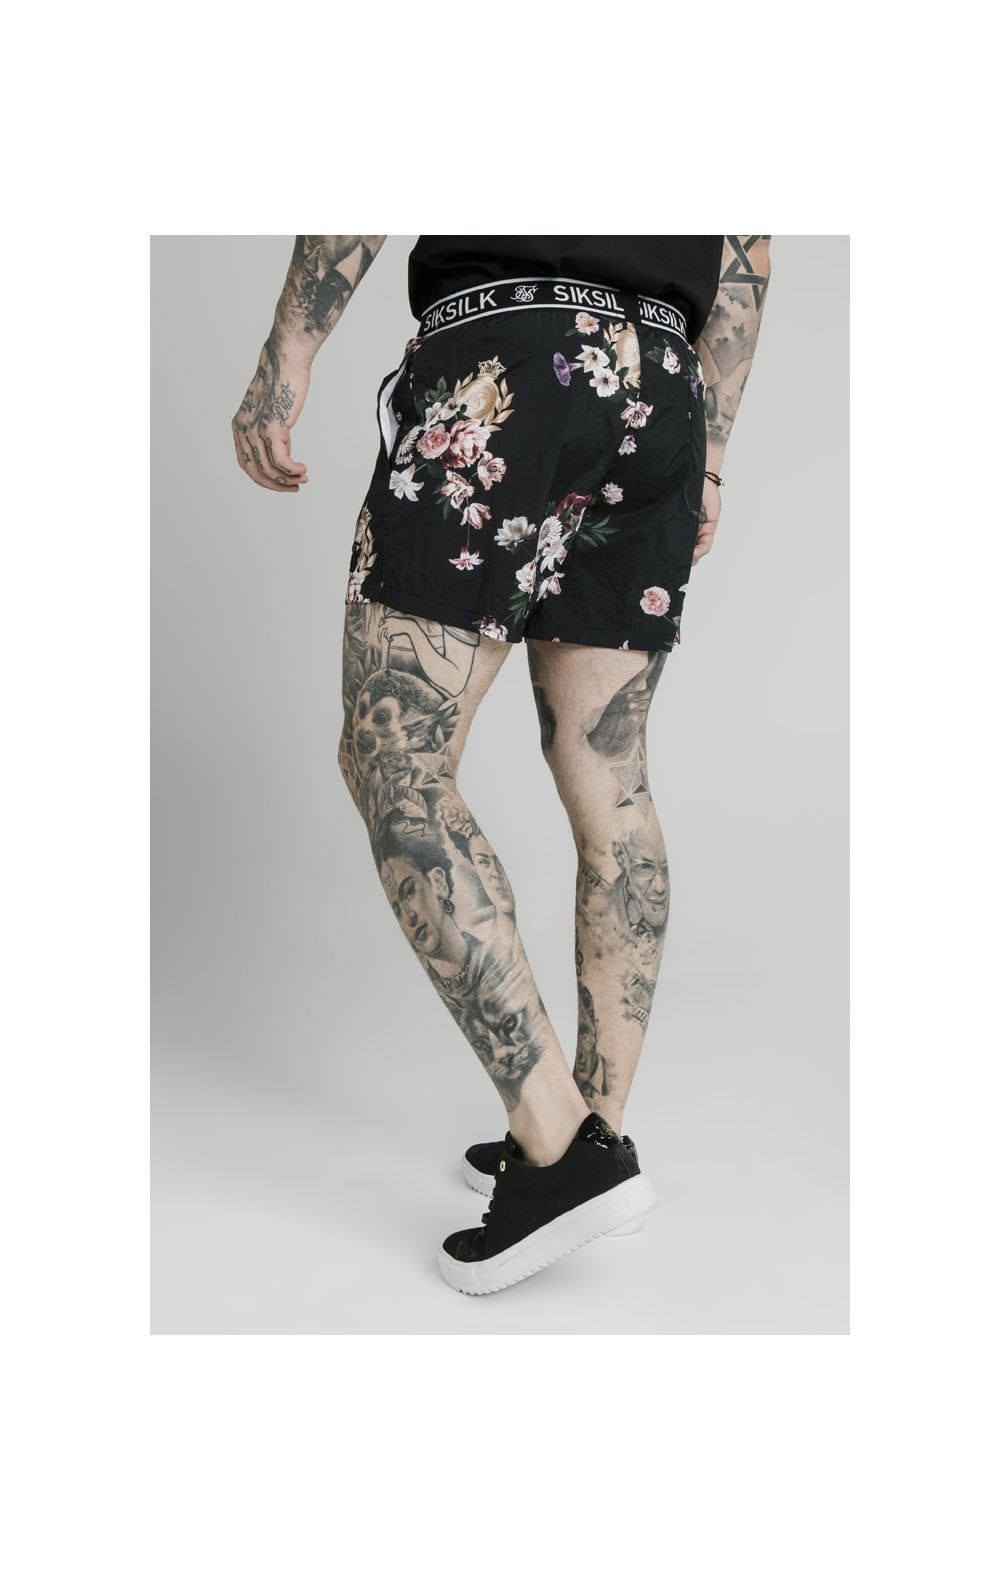 SikSilk Prestige Floral Swim Shorts - Black (4)